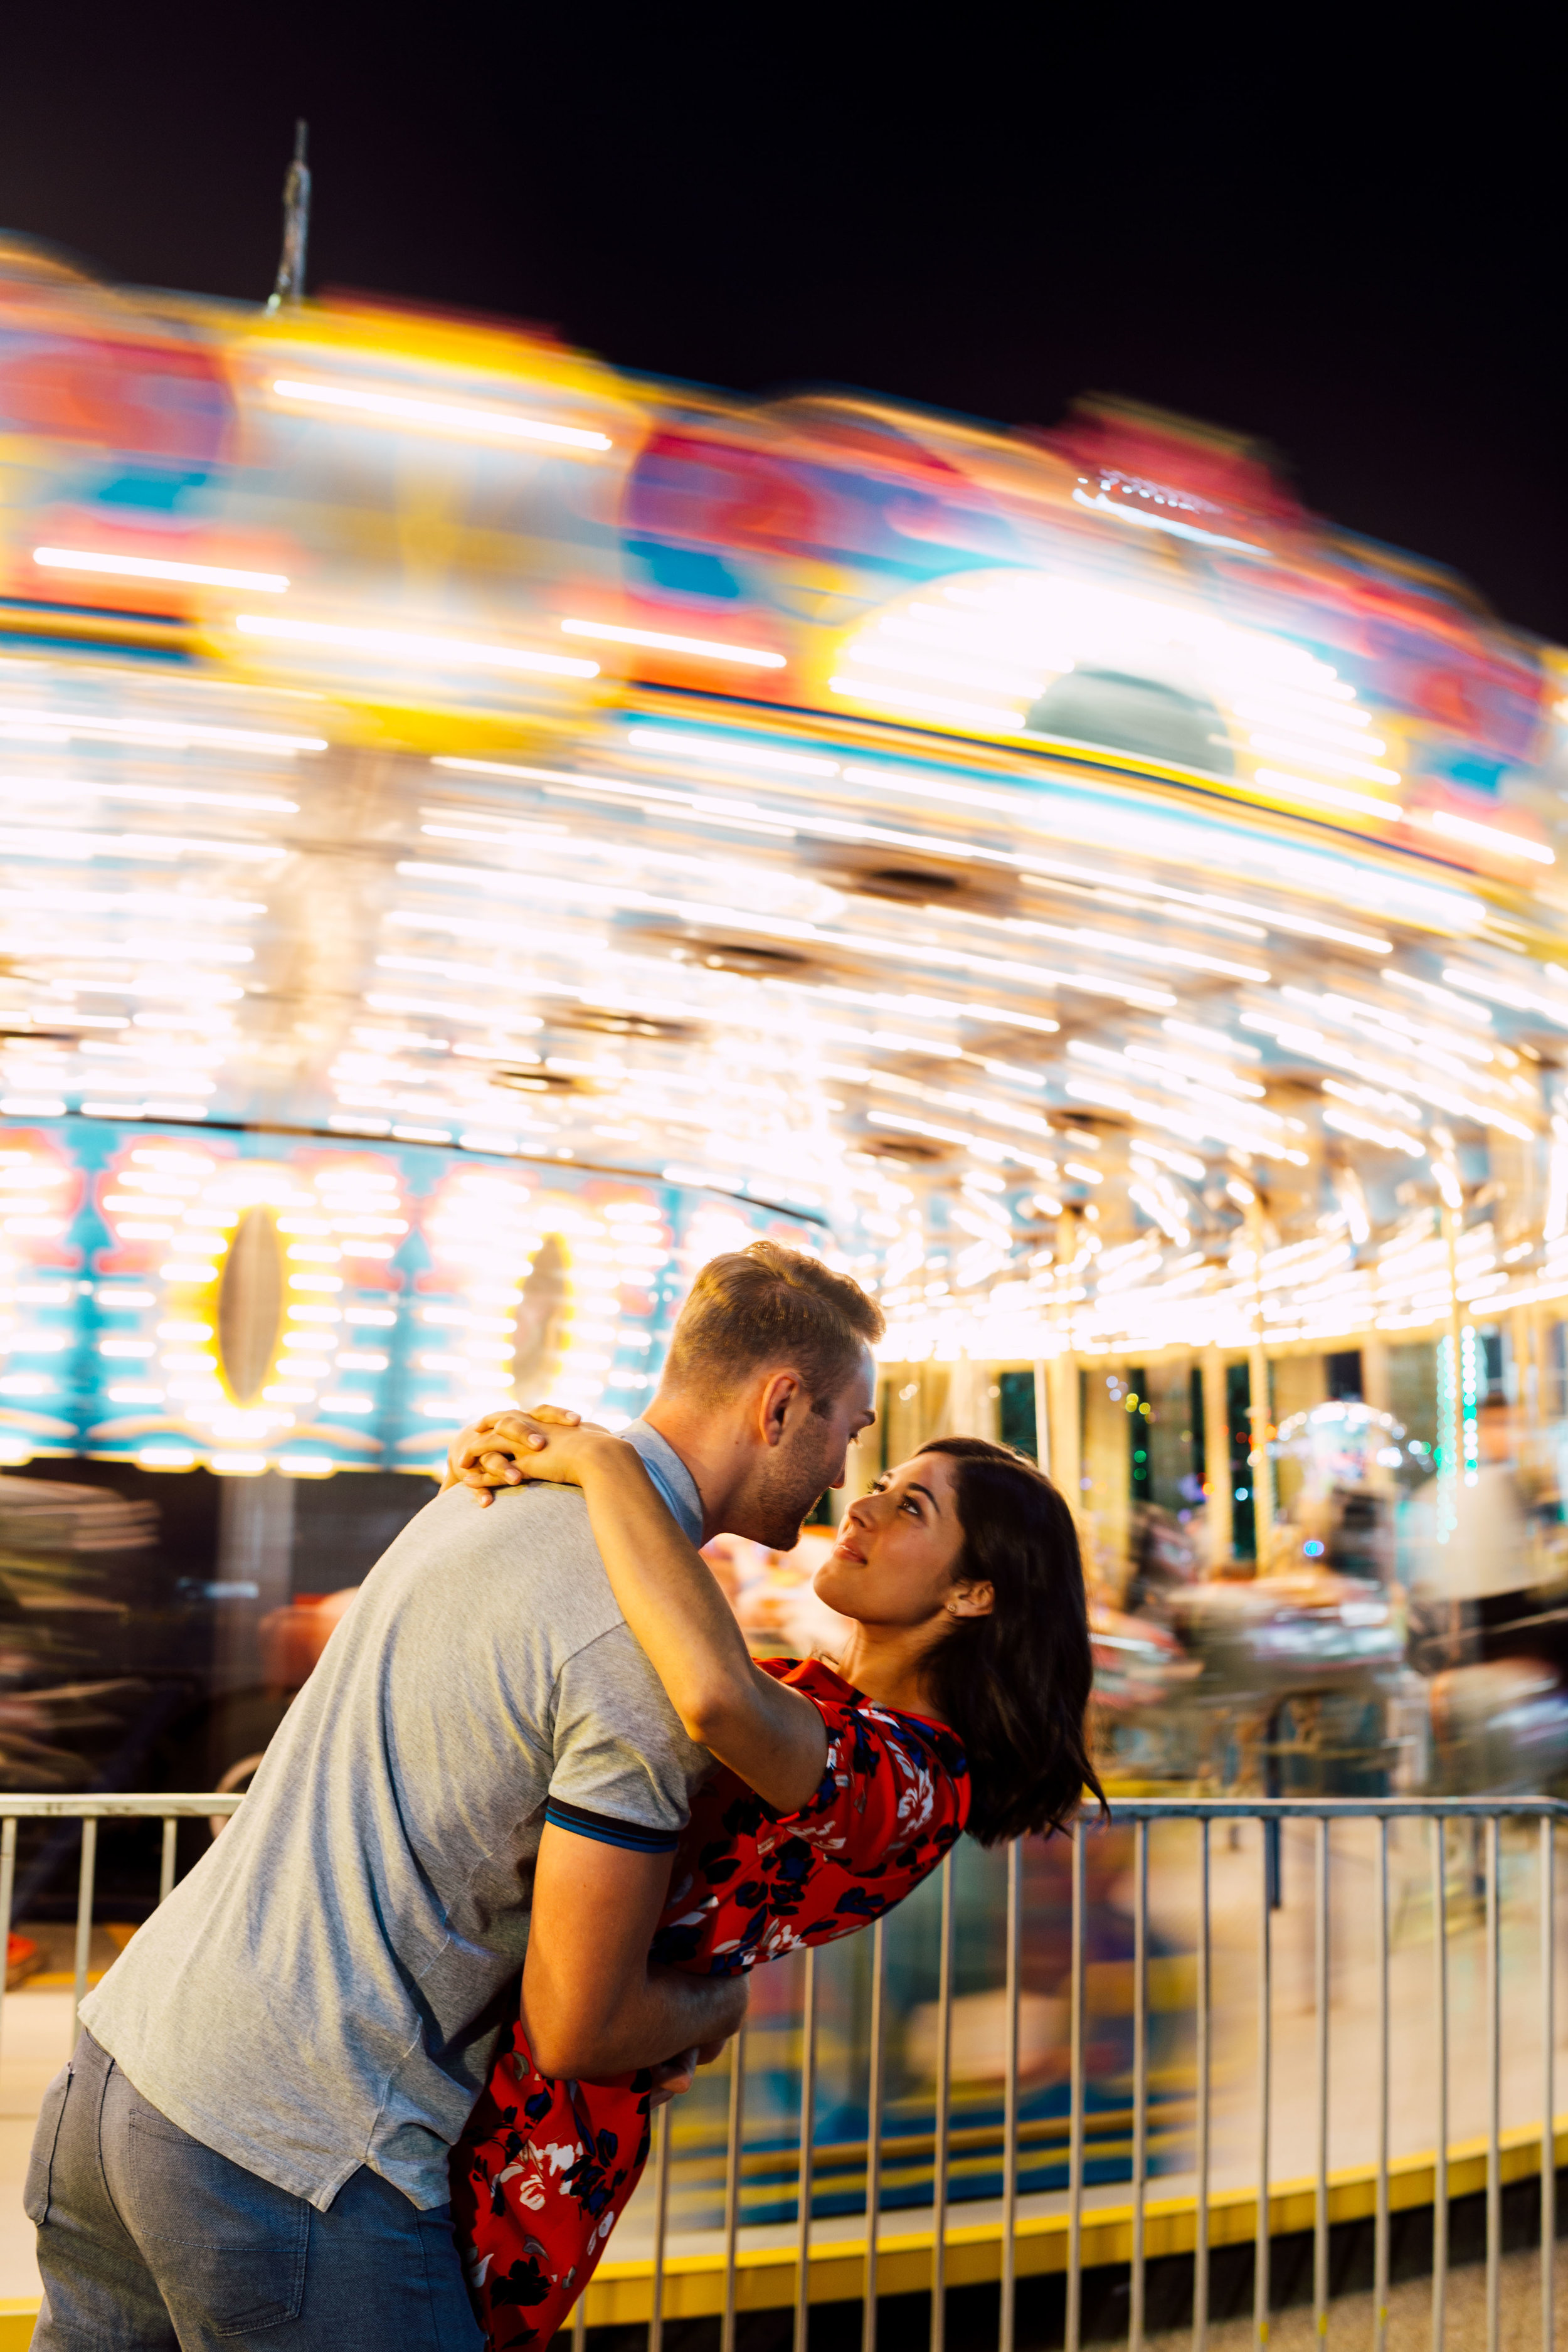 Engagement_Photography_Carnival_Fair-youthebestphotos-20.jpg